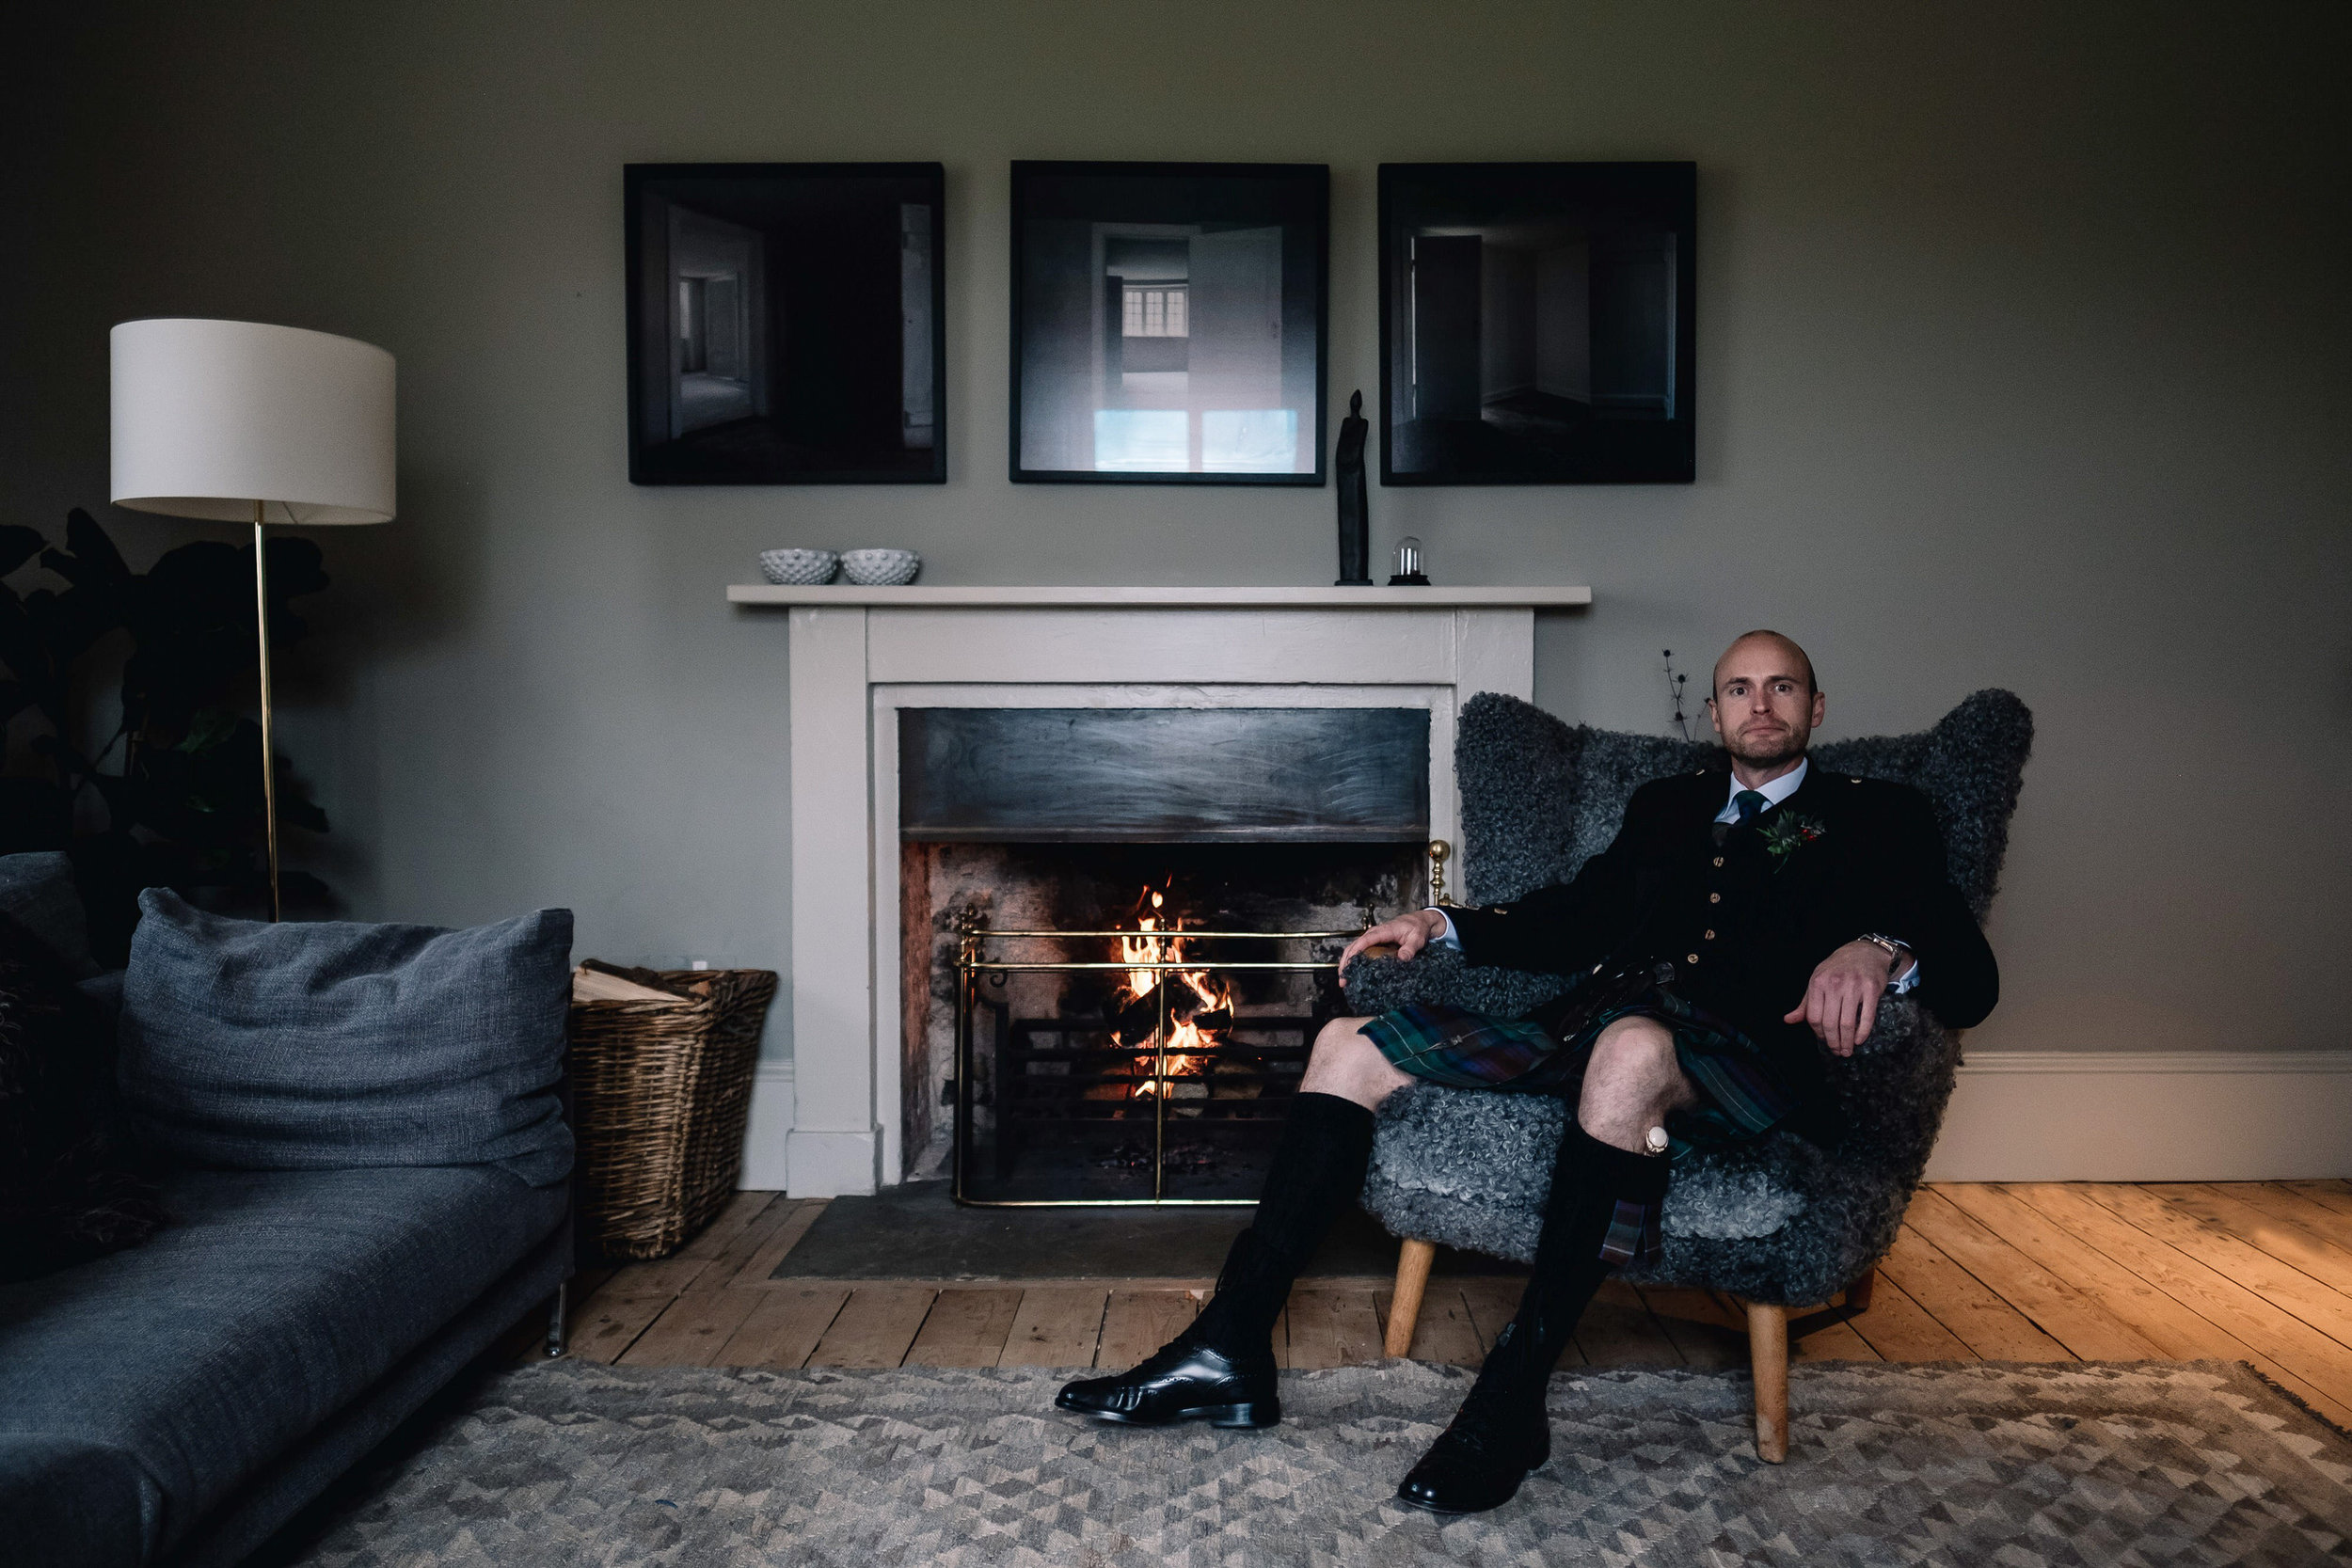 Portriat of groom sitting by log fire.